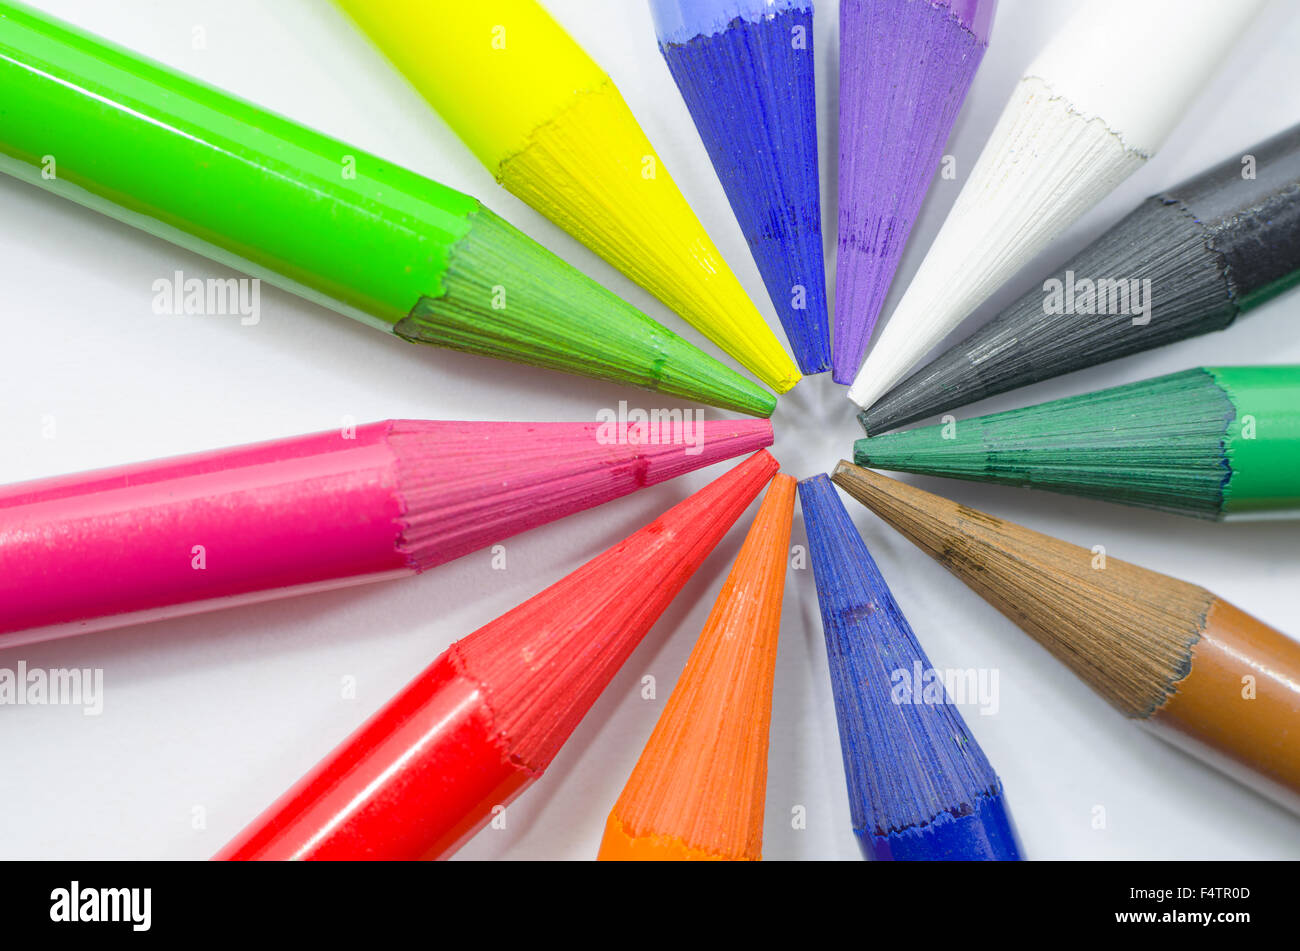 Woodless Colored Pencil Heads Arranged in Circle Macro Closeup - Stock Image